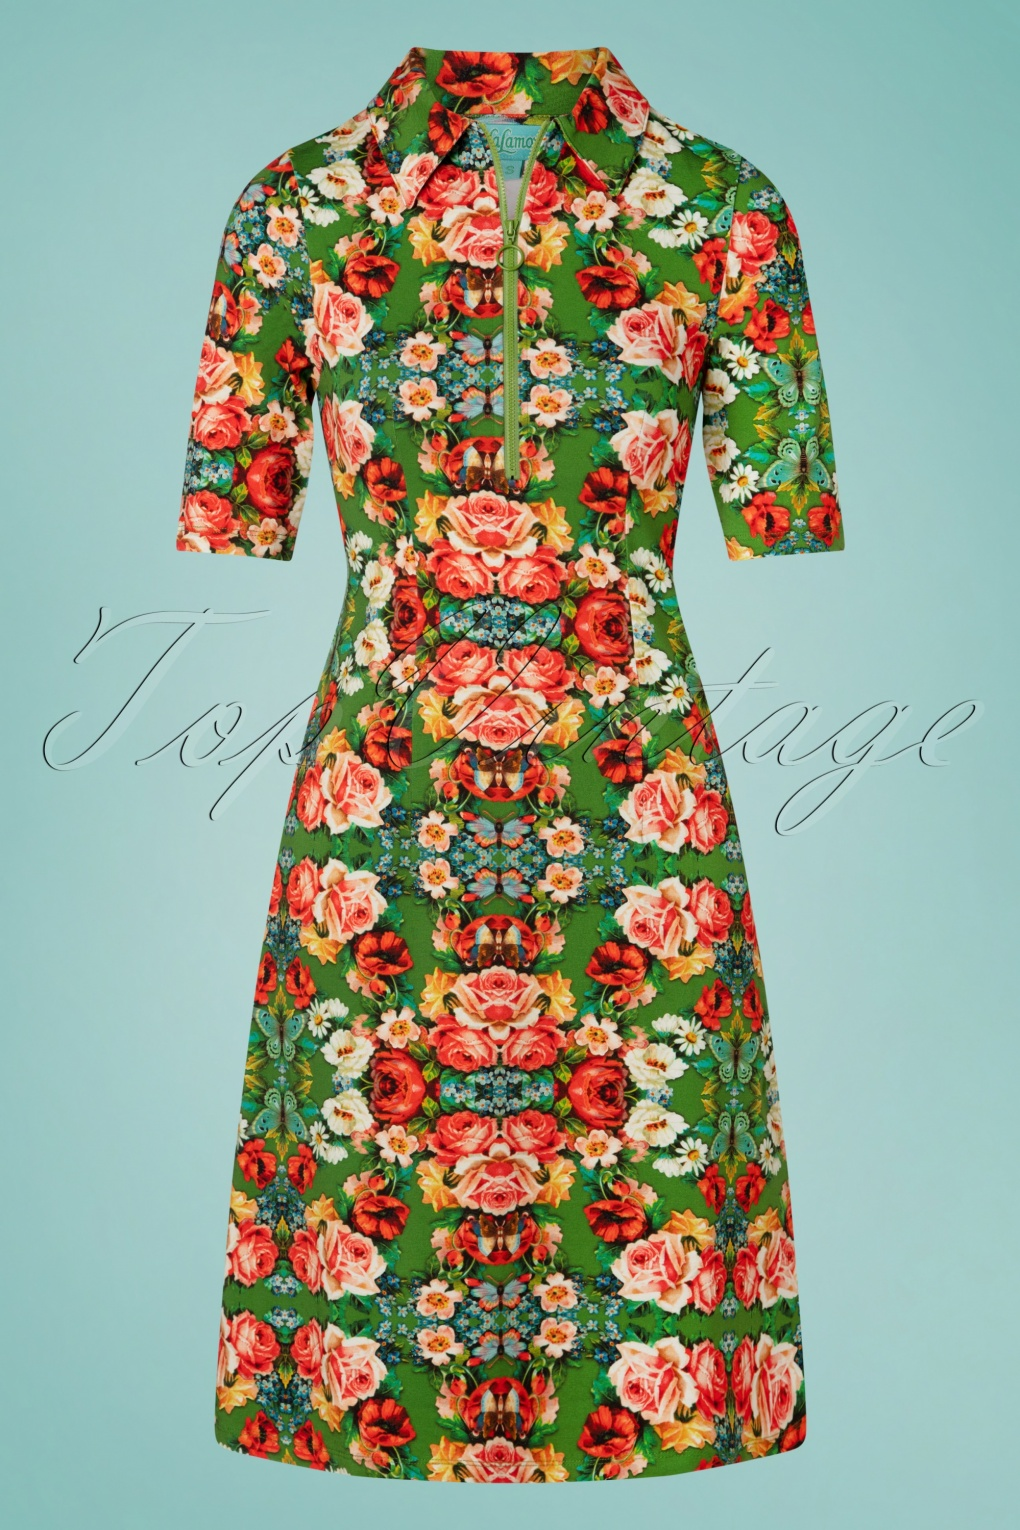 60s Dresses | 1960s Dresses Mod, Mini, Hippie 60s Rose Zipper Dress in Green £19.95 AT vintagedancer.com